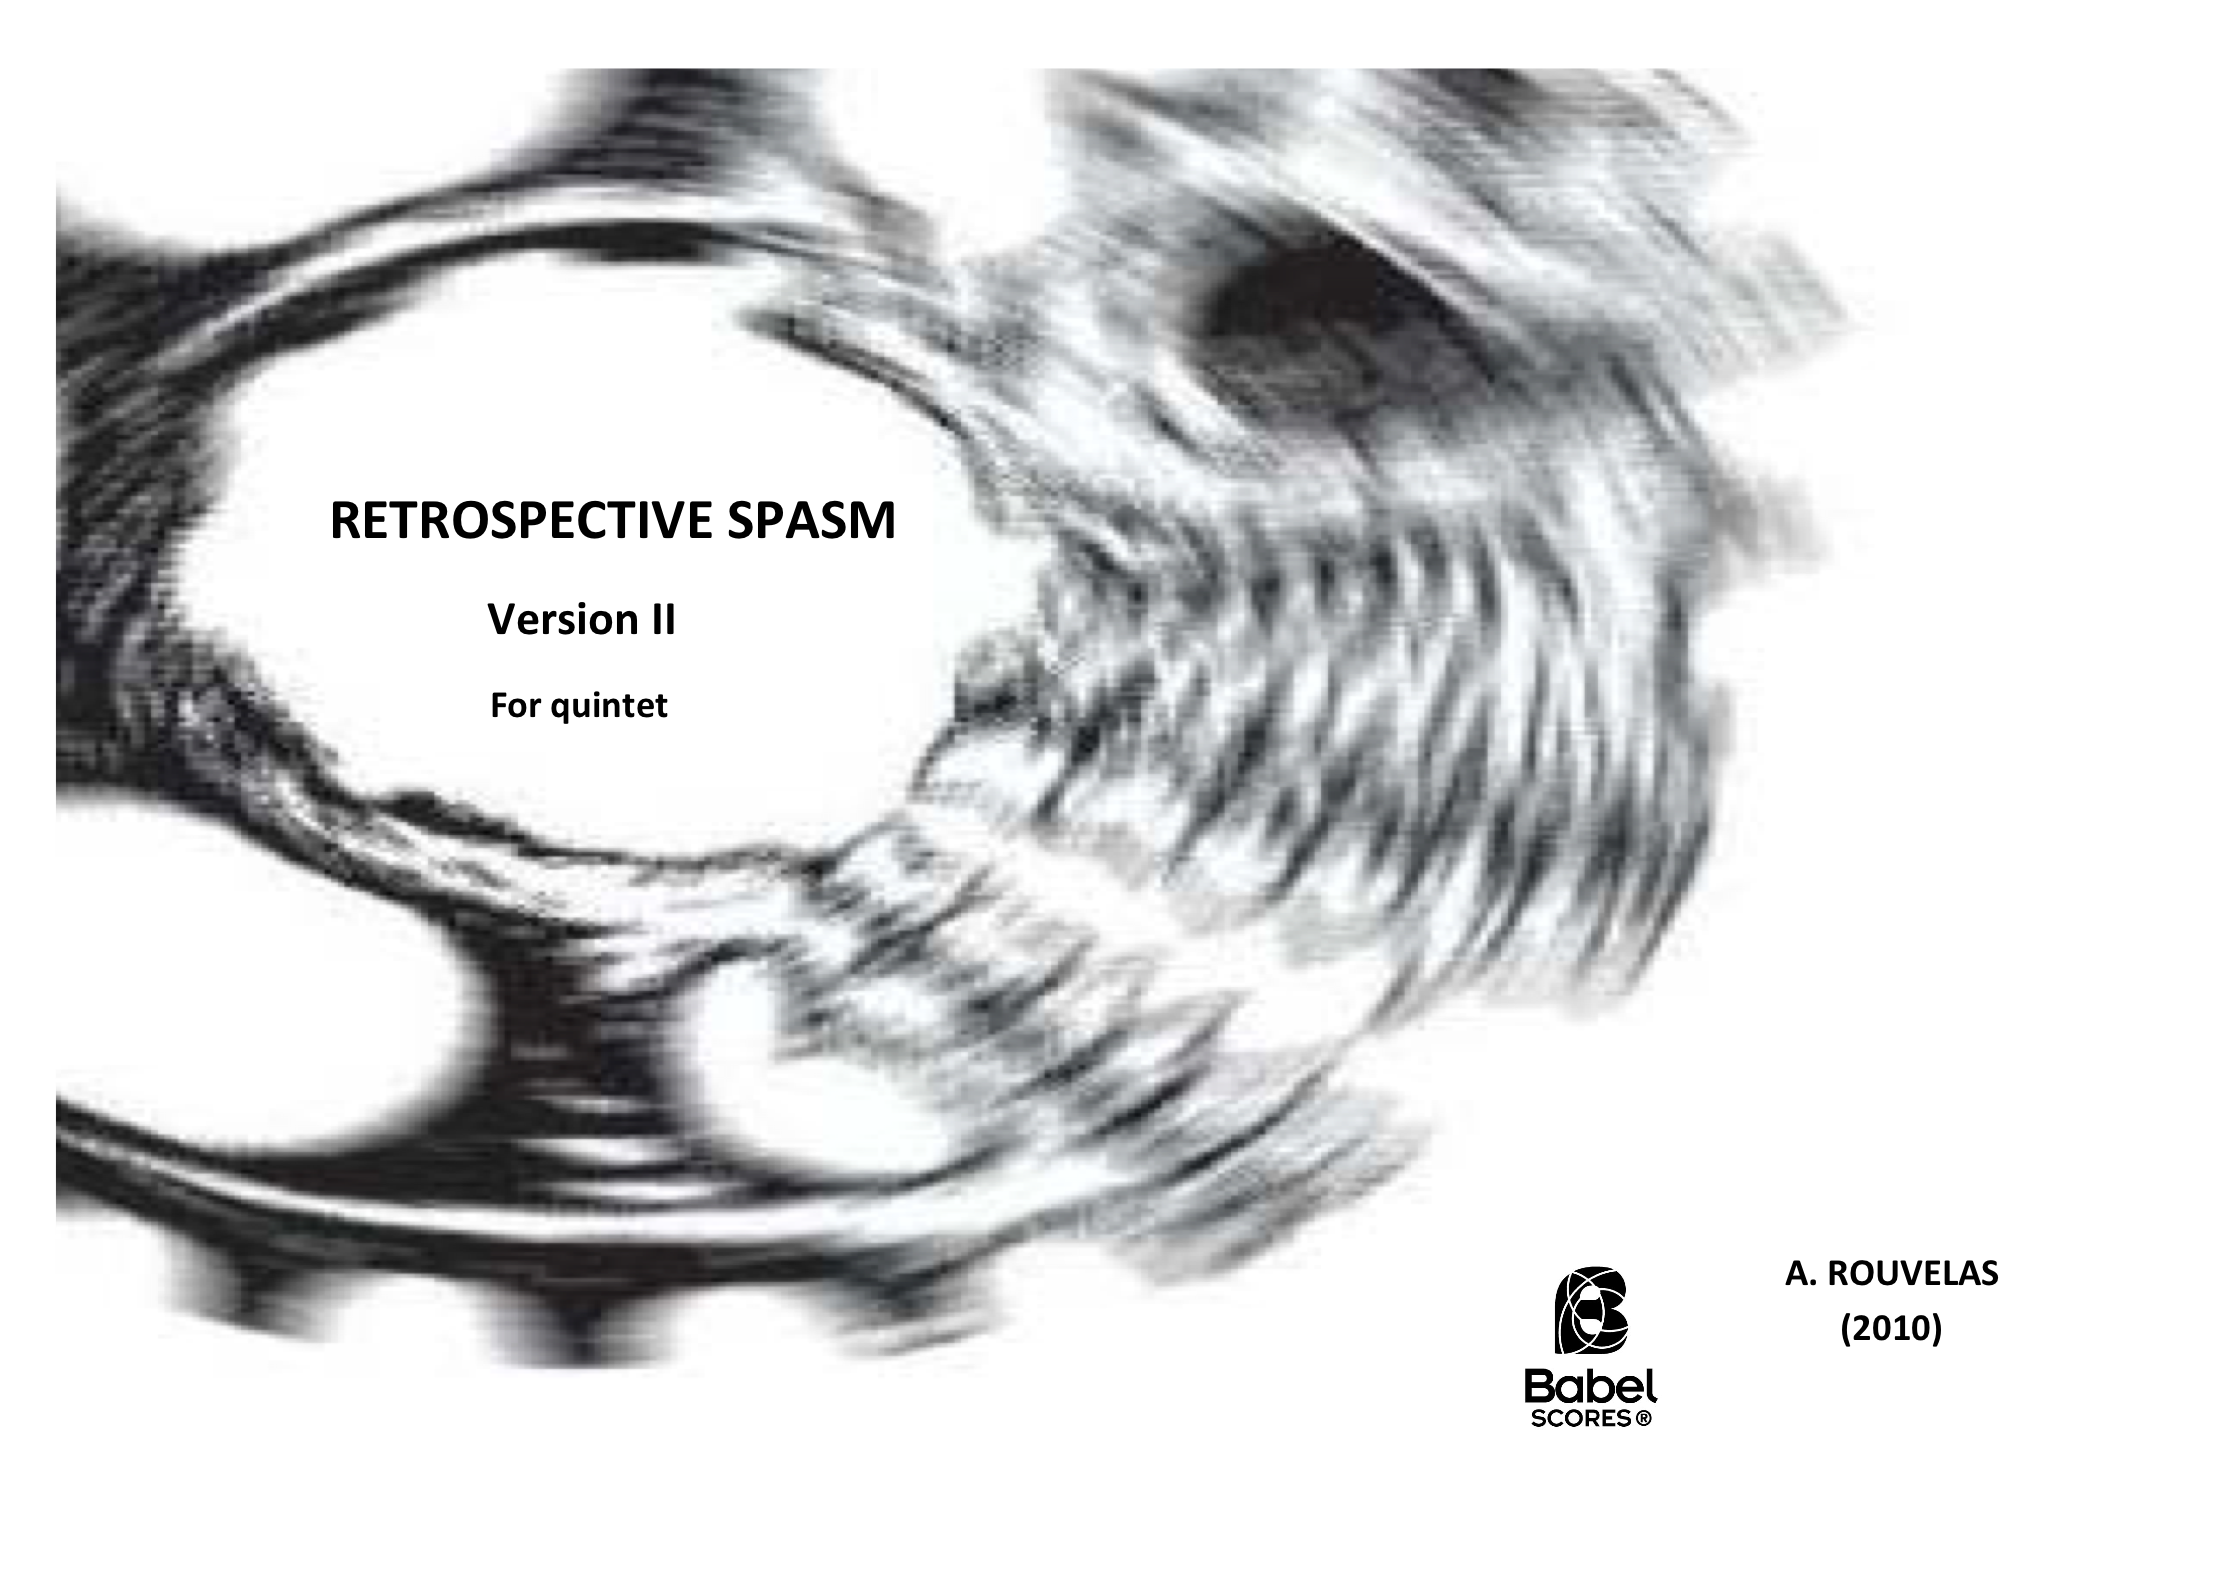 Retrospective spasm version II a4 z